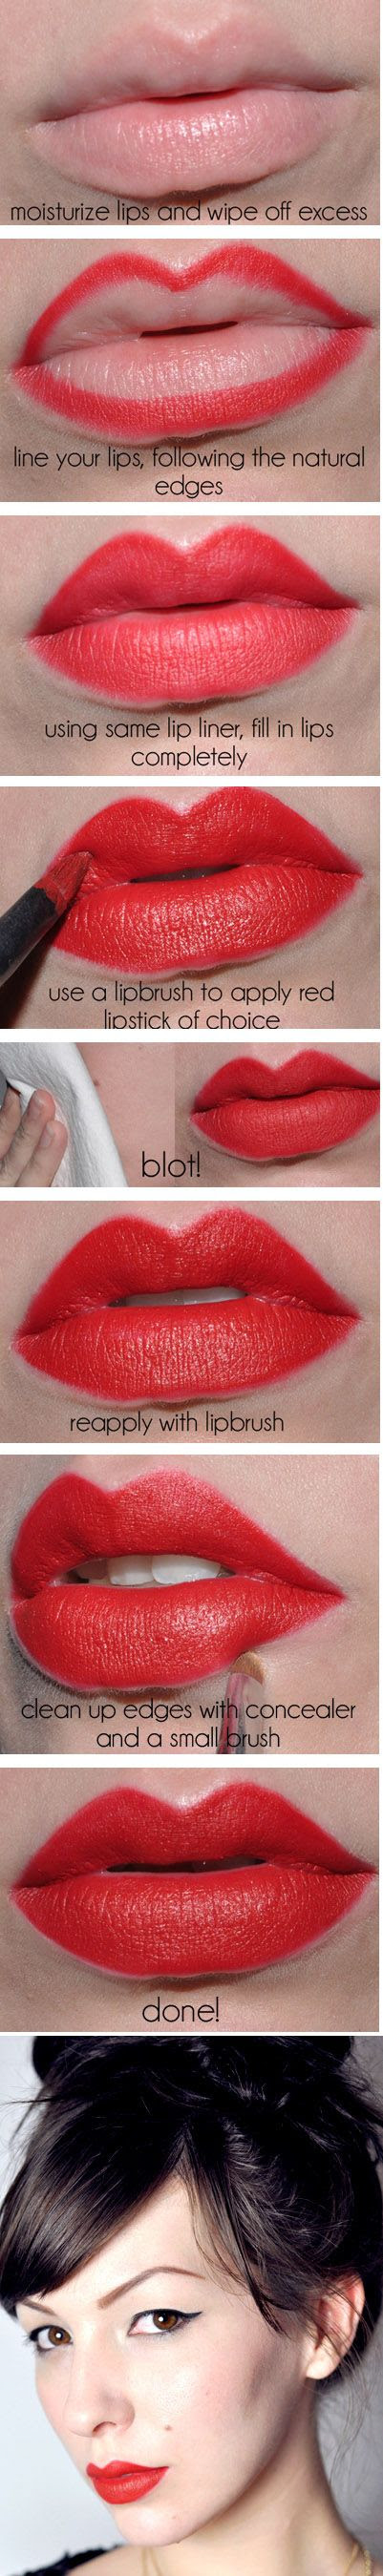 Vintage-Inspired Red Lips | 22 Beauty Tutorials For Dramatic Holiday Looks